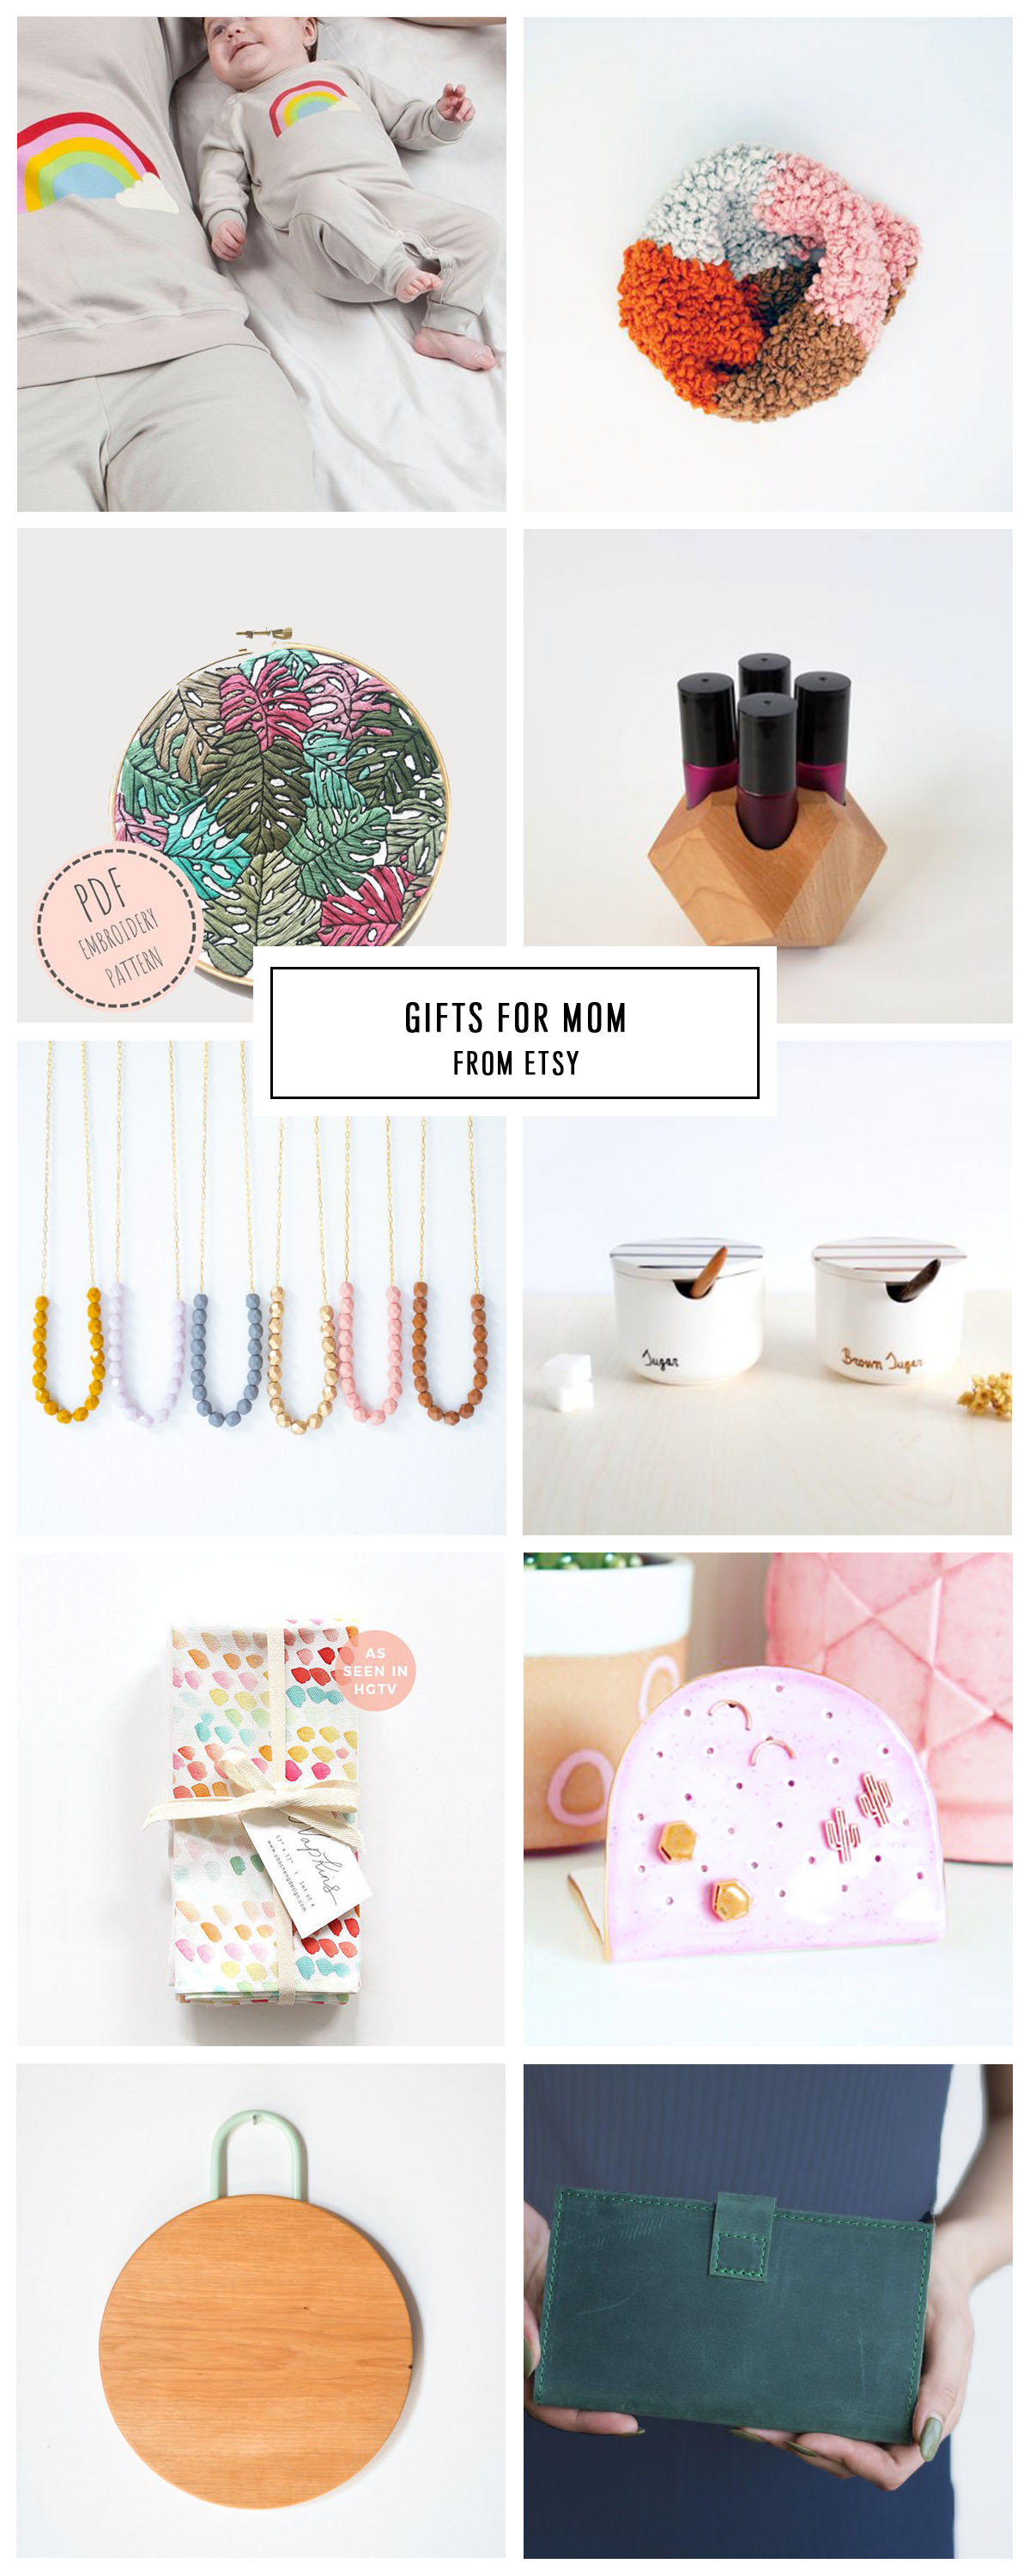 Etsy Gift Guide For The Whole Family Under $75 | Sugar & Cloth